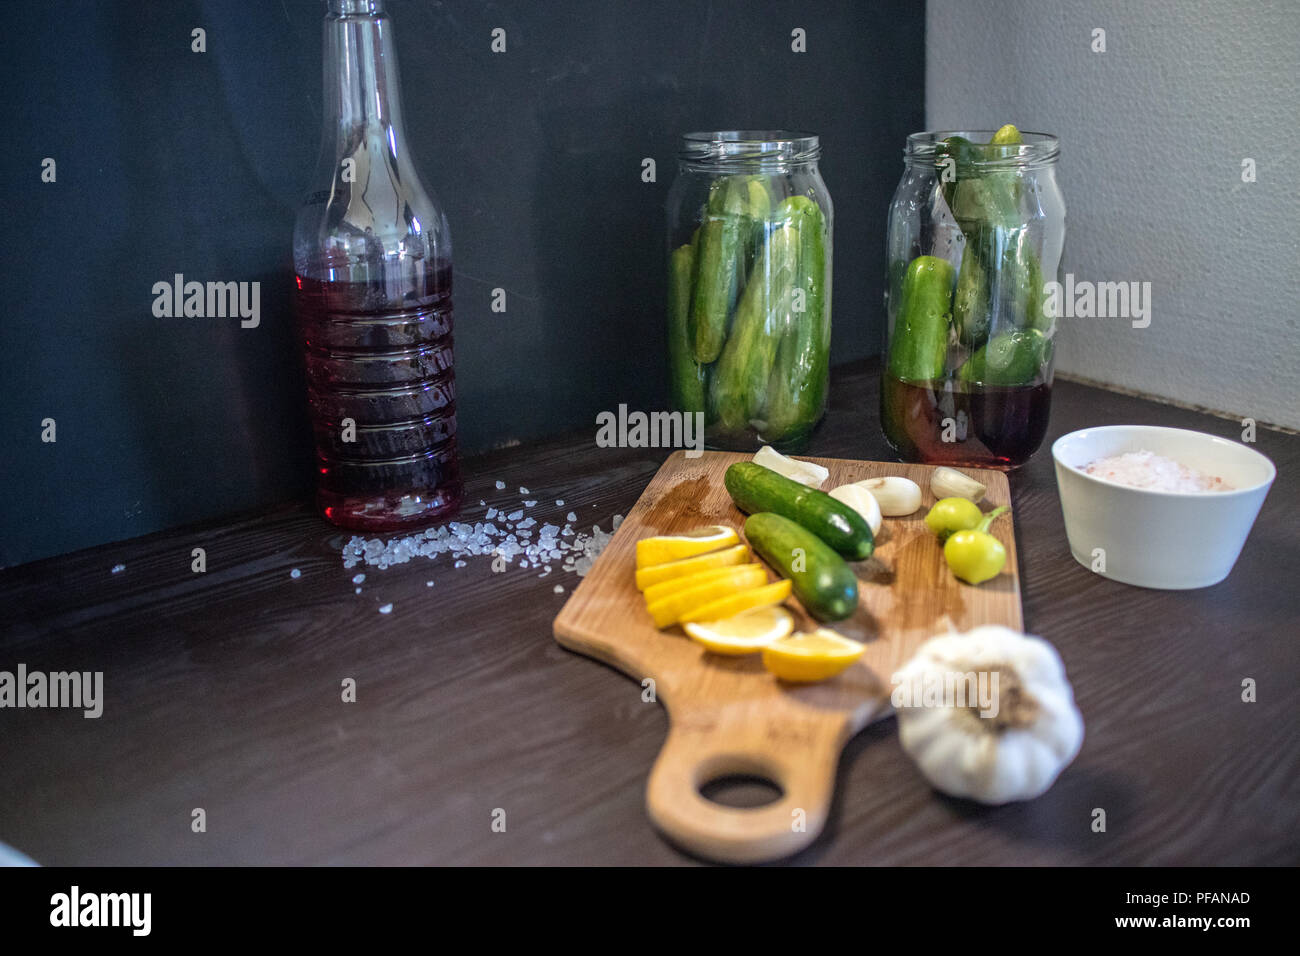 pickled cucumbers and ingredients, cucumber, garlic, vinegar, lemon, one or two peppers, parsley and coarse rock salt - Stock Image